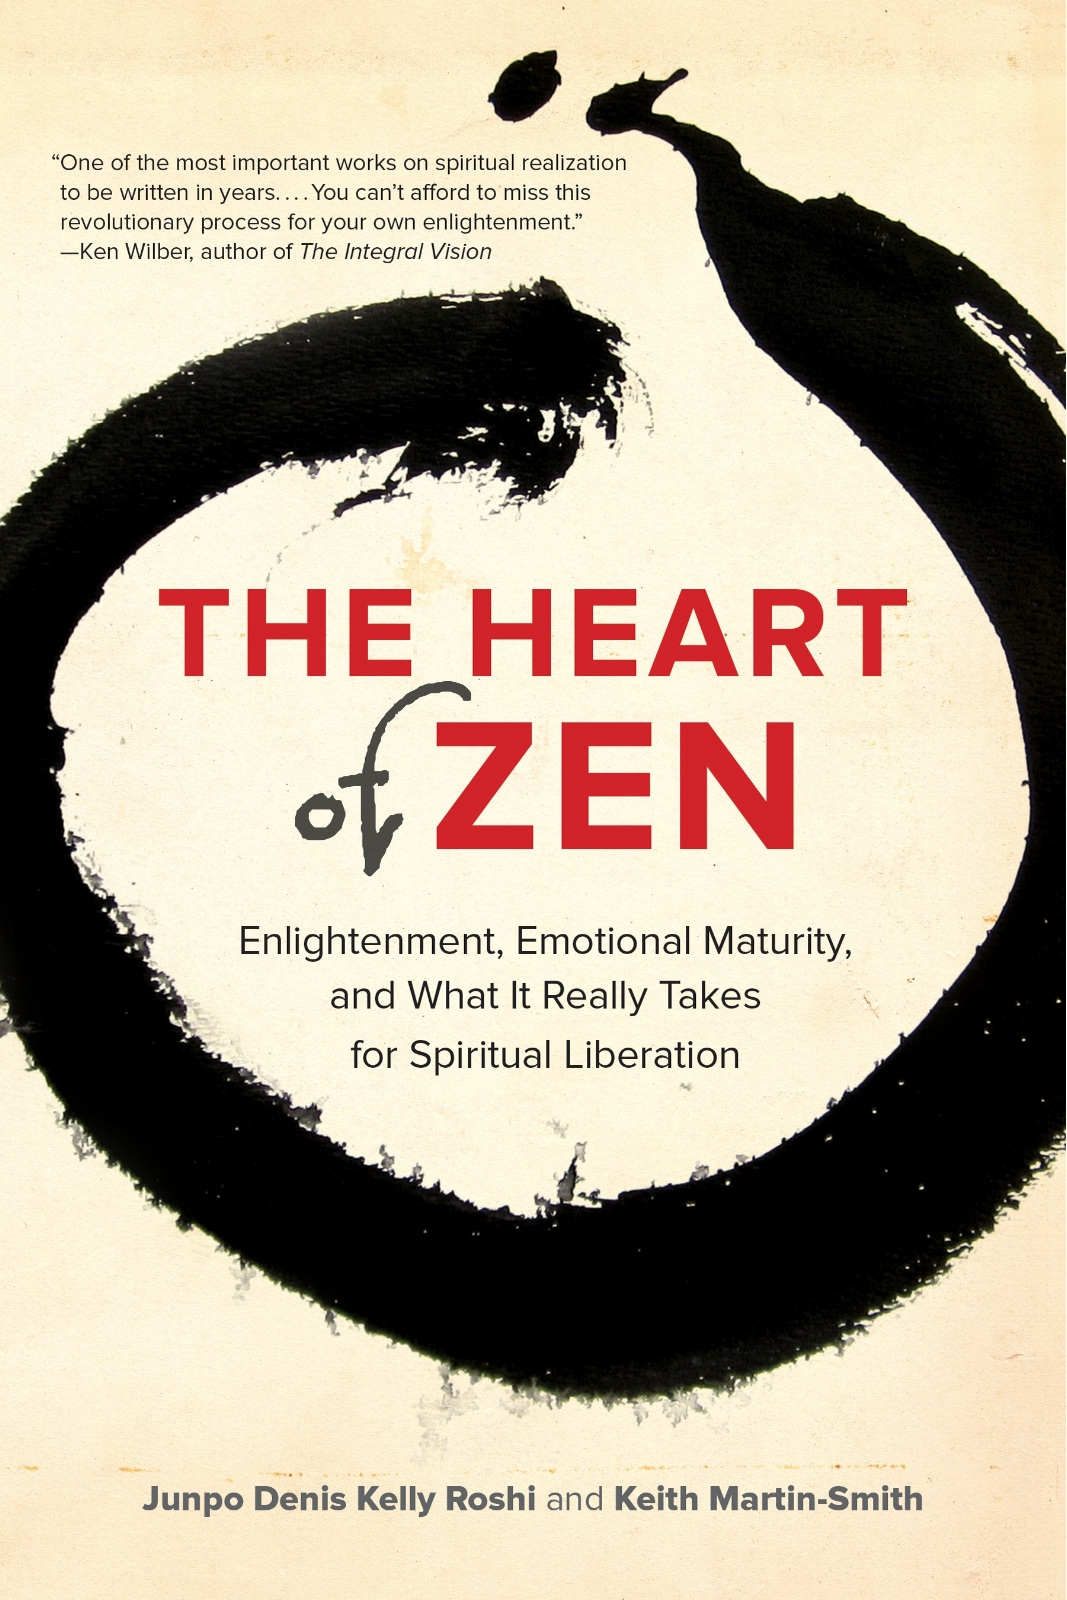 """The Heart of Zen,  by Keith Martin Smith and Junpo Denis Kelly Roshi   """"This is one of the most important works on spiritual realization to be written in years. There's really nothing like this out there…you really can't afford to miss this revolutionary process for your own awakening and enlightenment. My absolutely highest recommendation""""      Ken Wilber ,   author of The Integral Vision"""